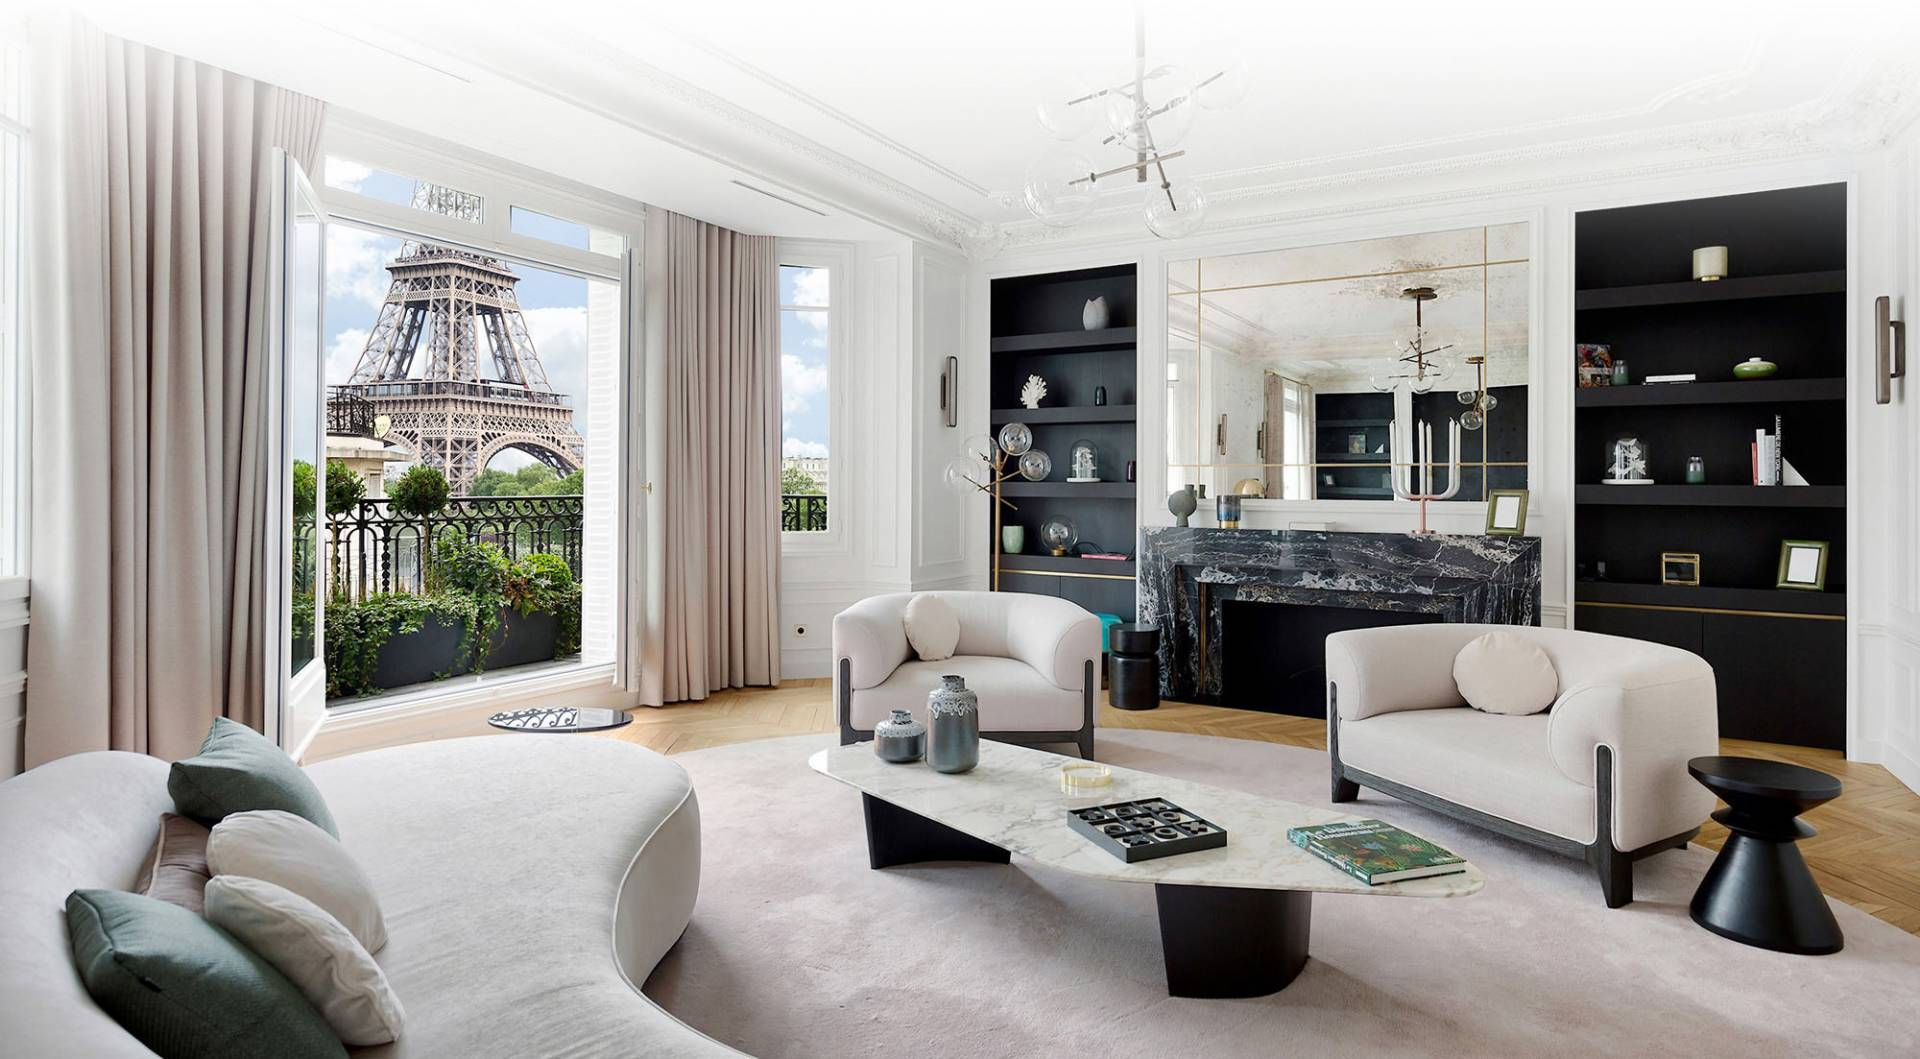 How Challenging Will It Be to Purchase an Apartment in Paris